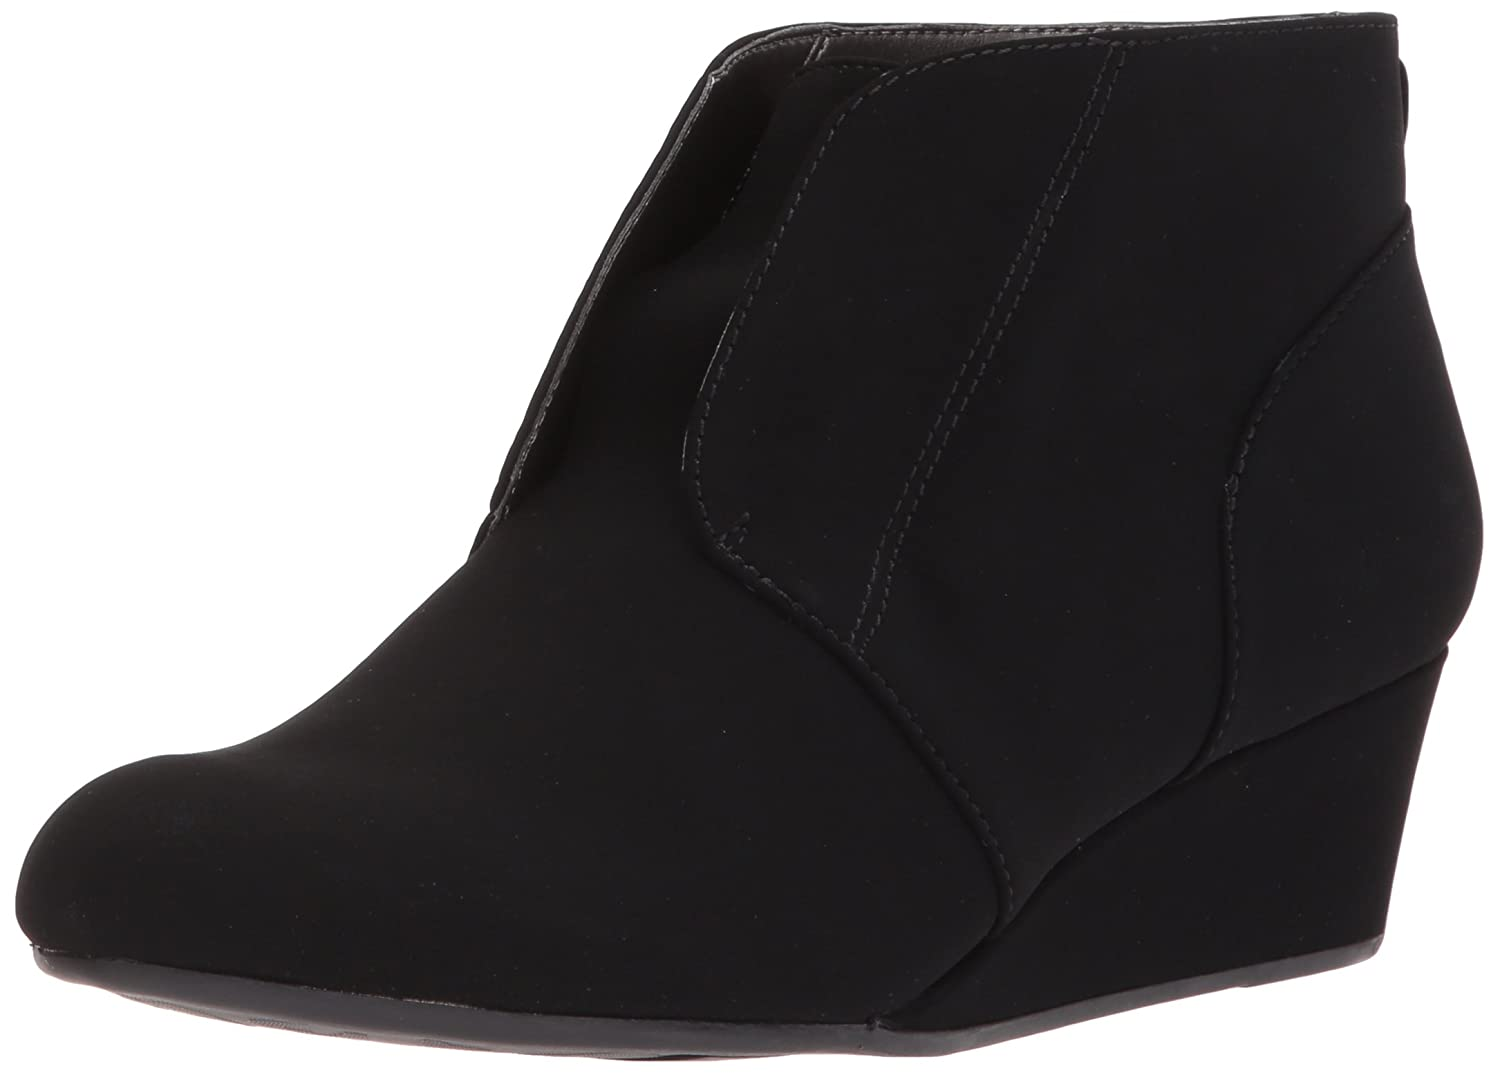 LifeStride Women's Lonnie Ankle Boot B075FCJ1WG 10 B(M) US|Black